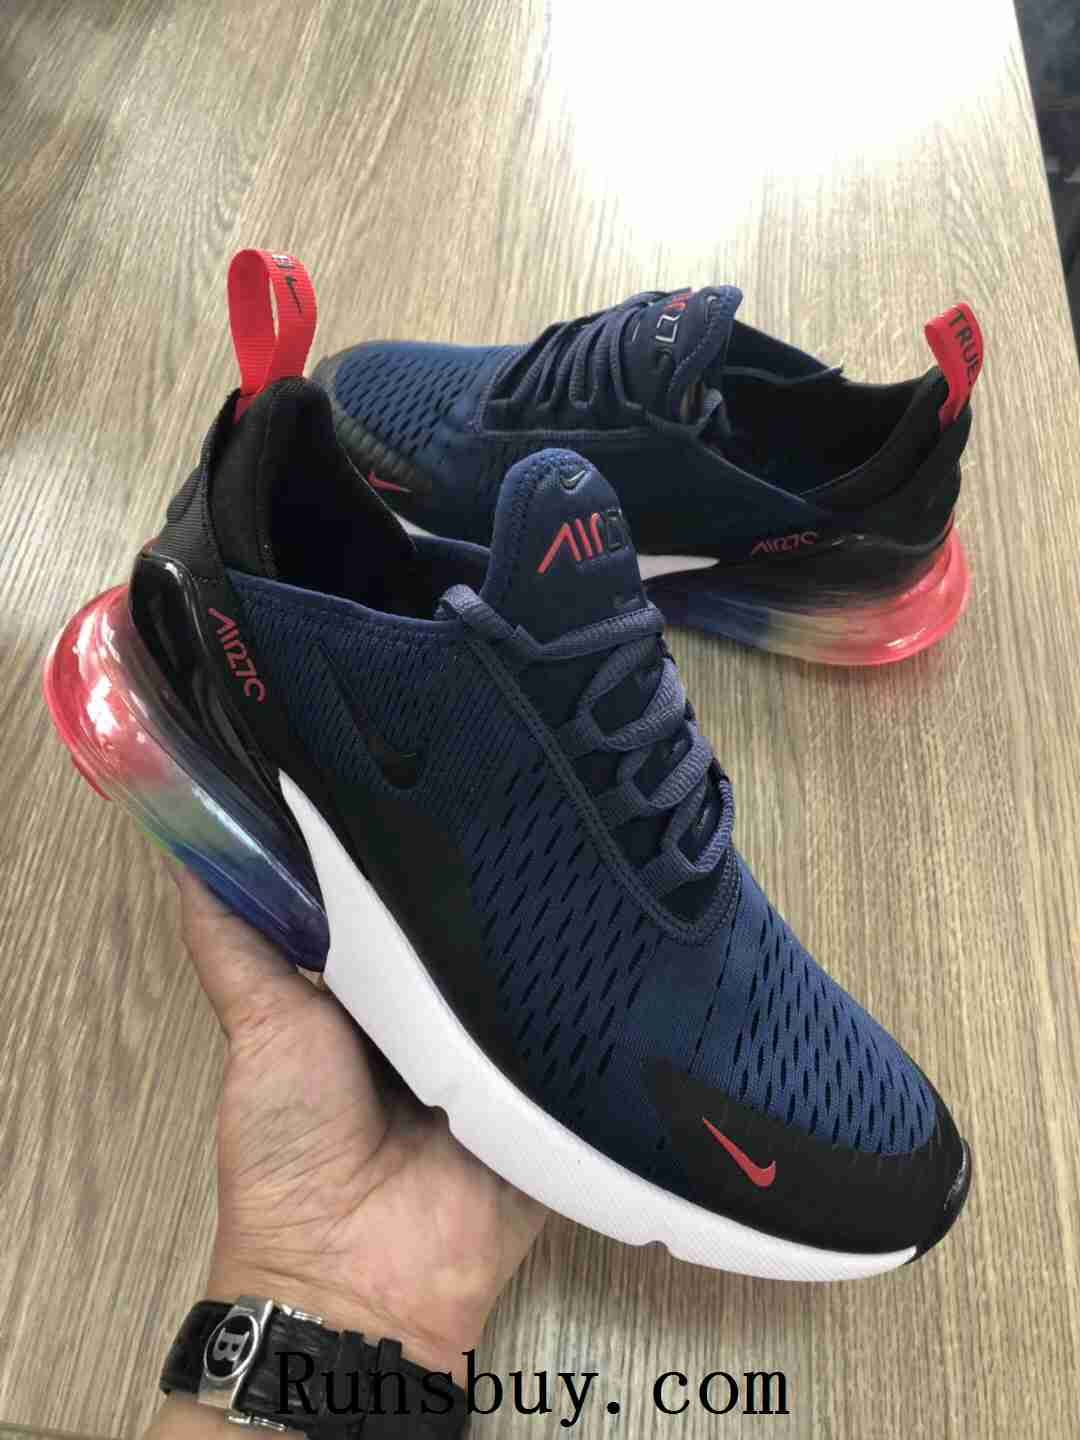 new styles 2cb71 44b52 Nike Air Max 270 Betrue Blue Black Rainbow Women Men Running Shoes